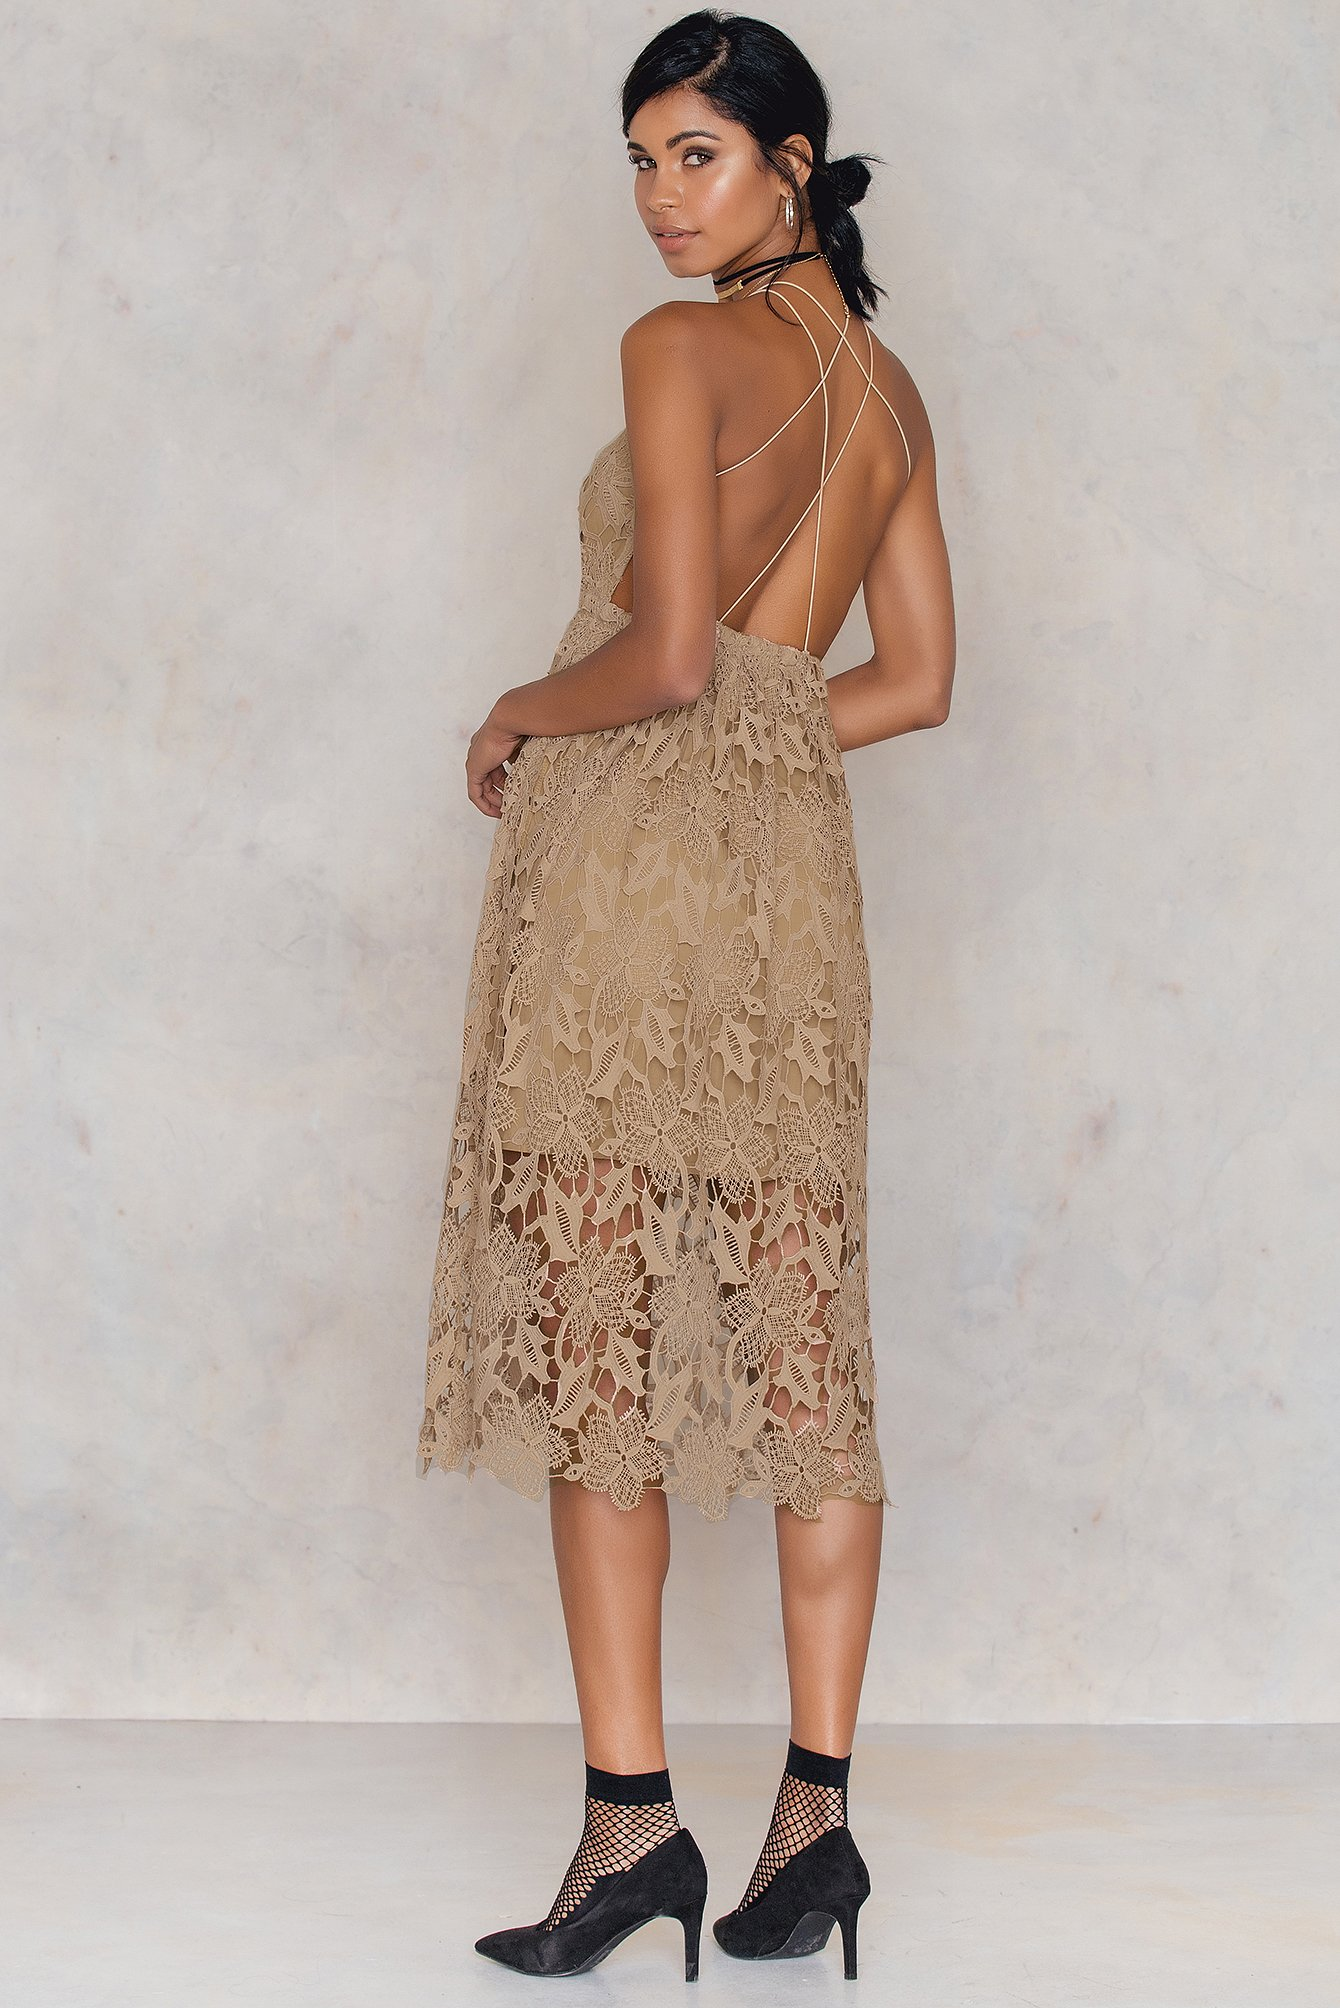 NA-KD Boho Crochet Strap Back Dress Beige by NA-KD Boho